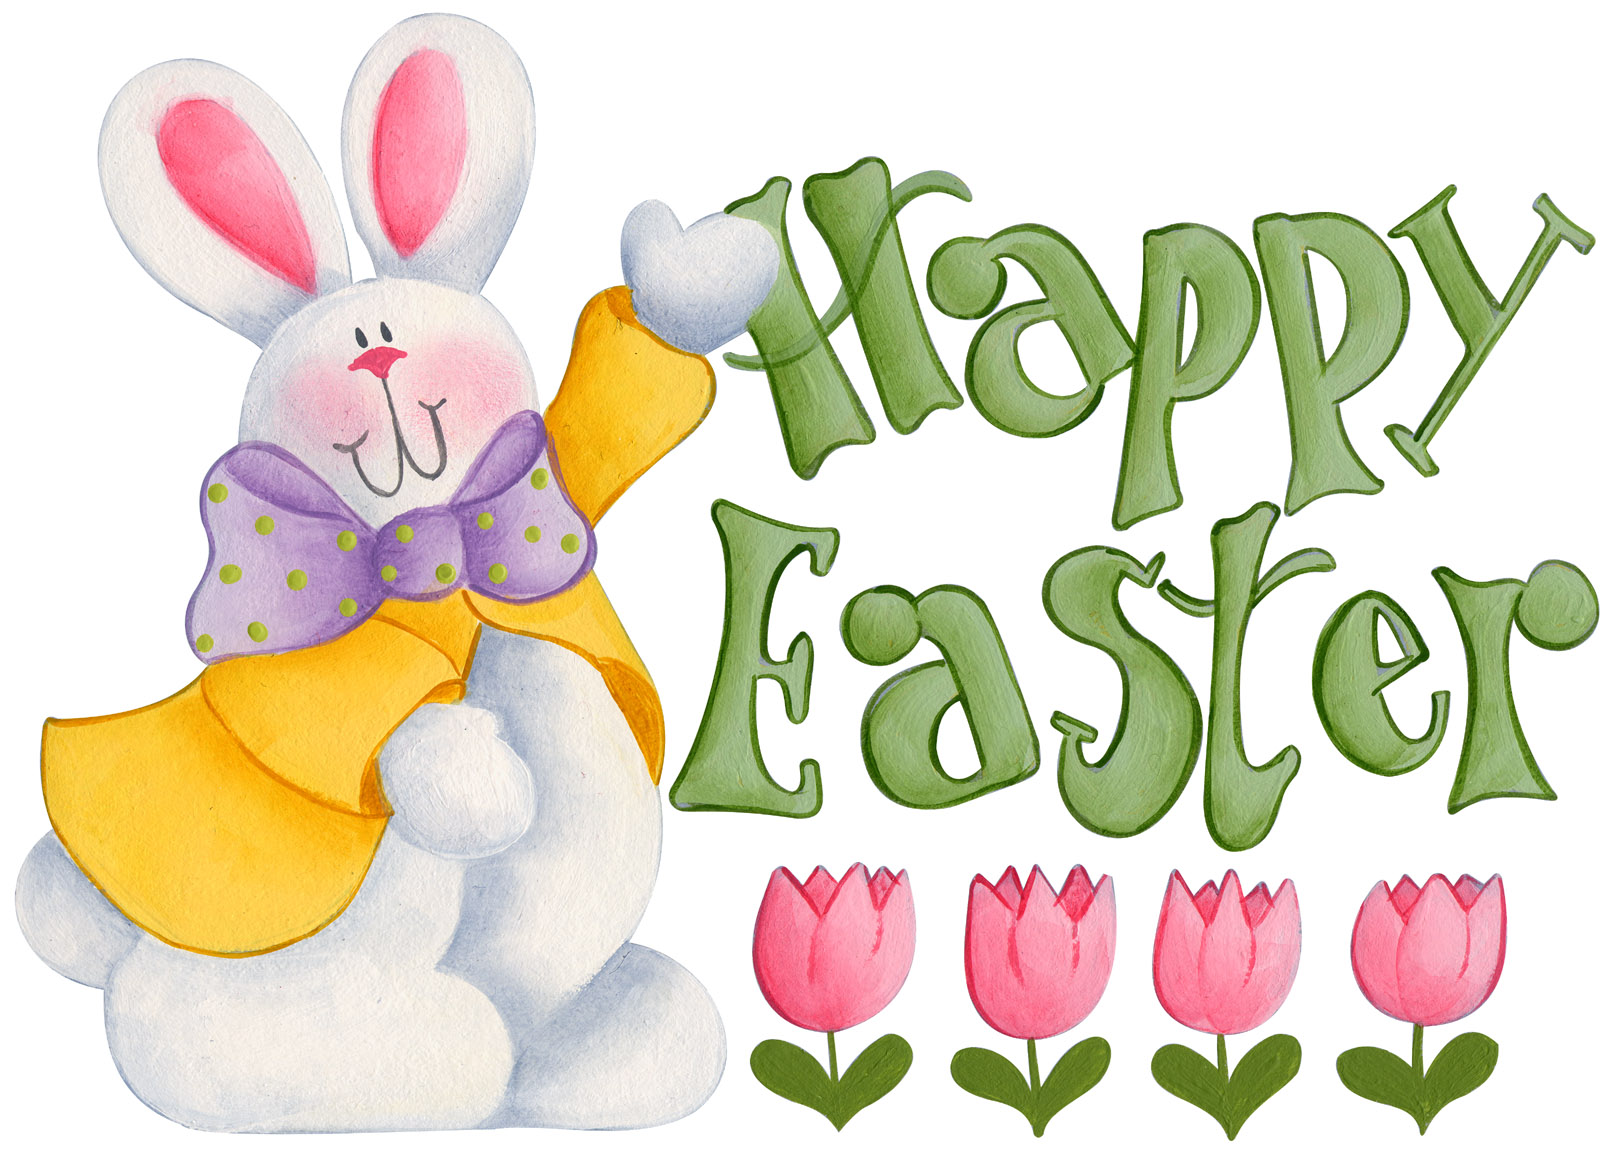 Happy Easter Images, Pictures, Pics, Photos & Wallpapers